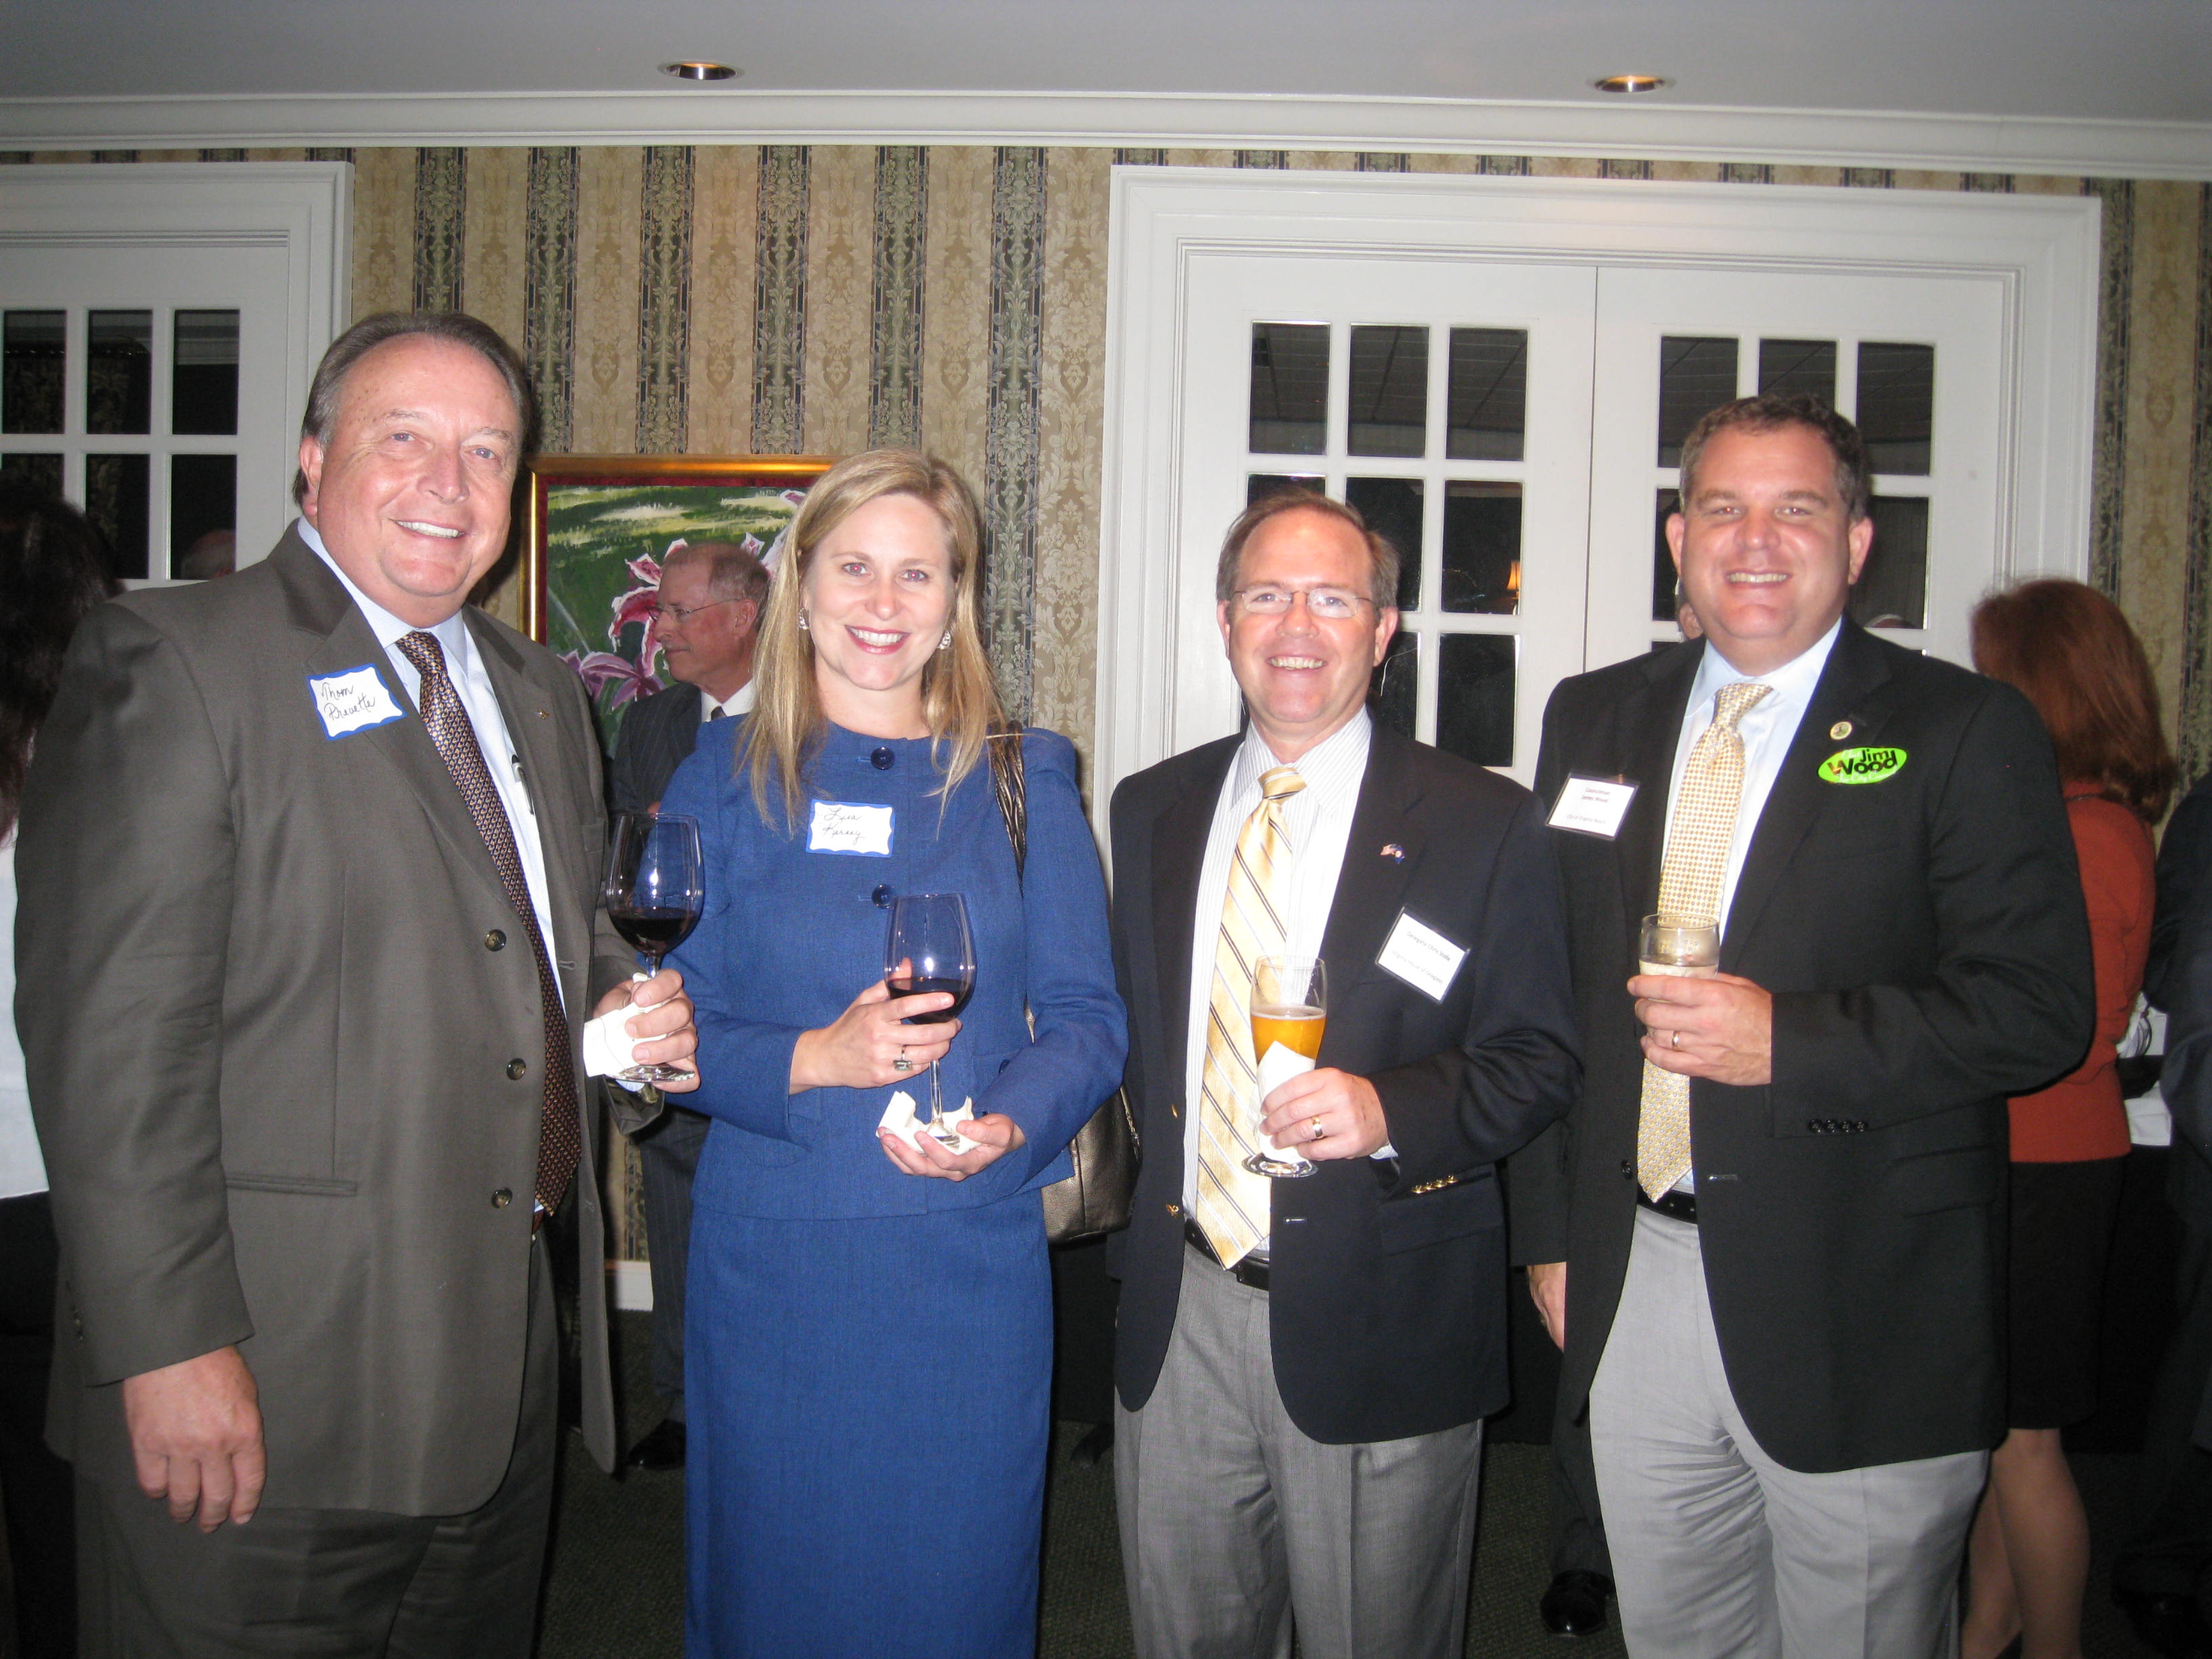 (from left) Thom Prevette and Lisa Kersey of Bon Secours Virginia Health System, Delegate Chris Stolle and Virginia Beach City Councilman Jim Wood